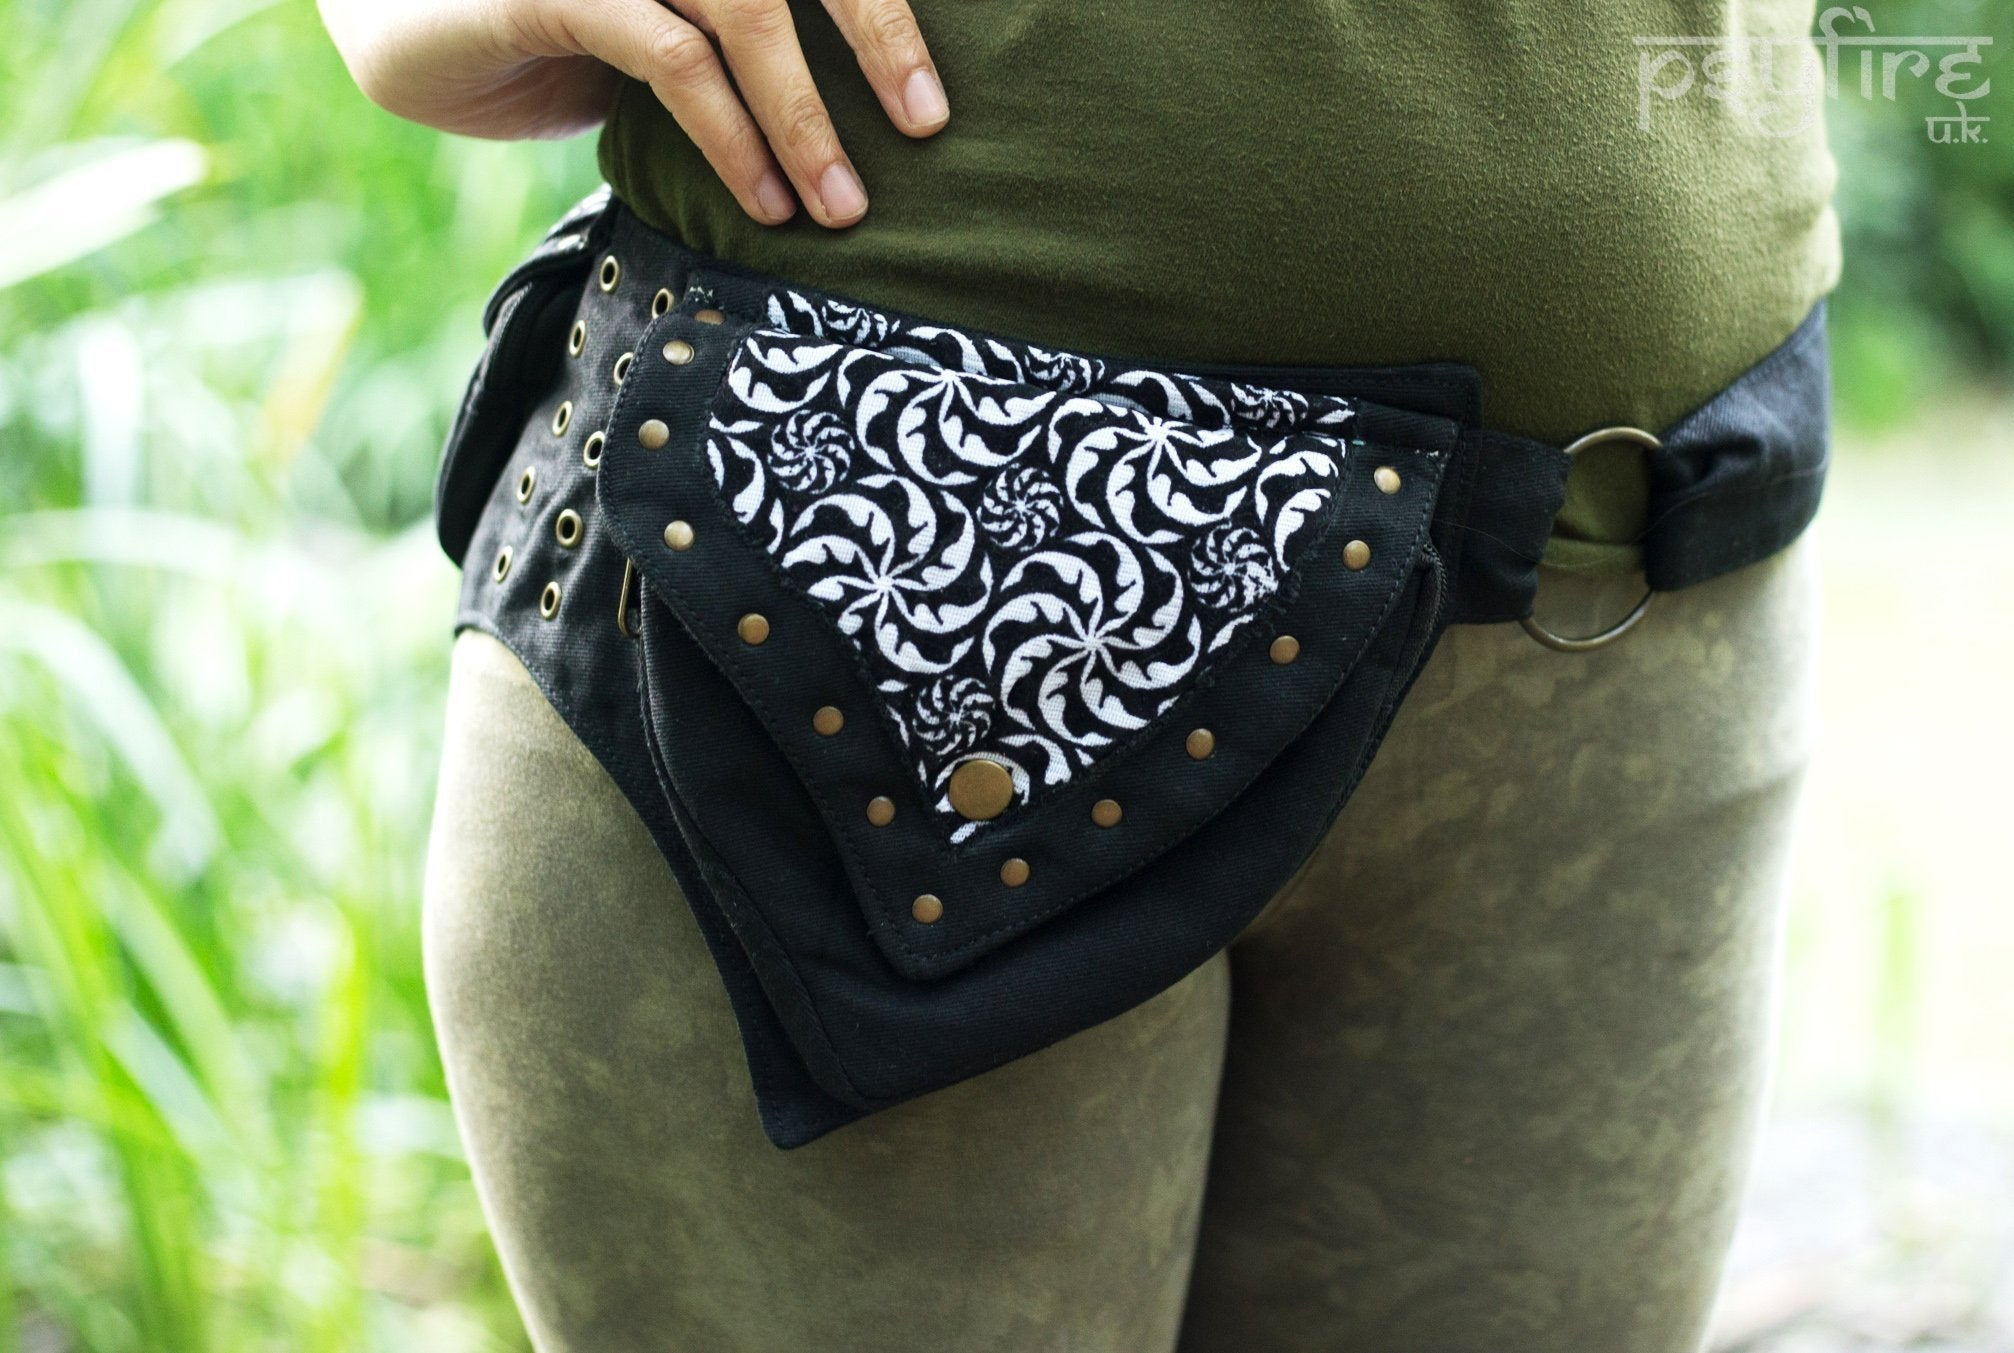 FRACTAL Utility Belt - Festival Belt, Psytrance Pocket Belt, Psy Hippie Hip Bag, Accessories